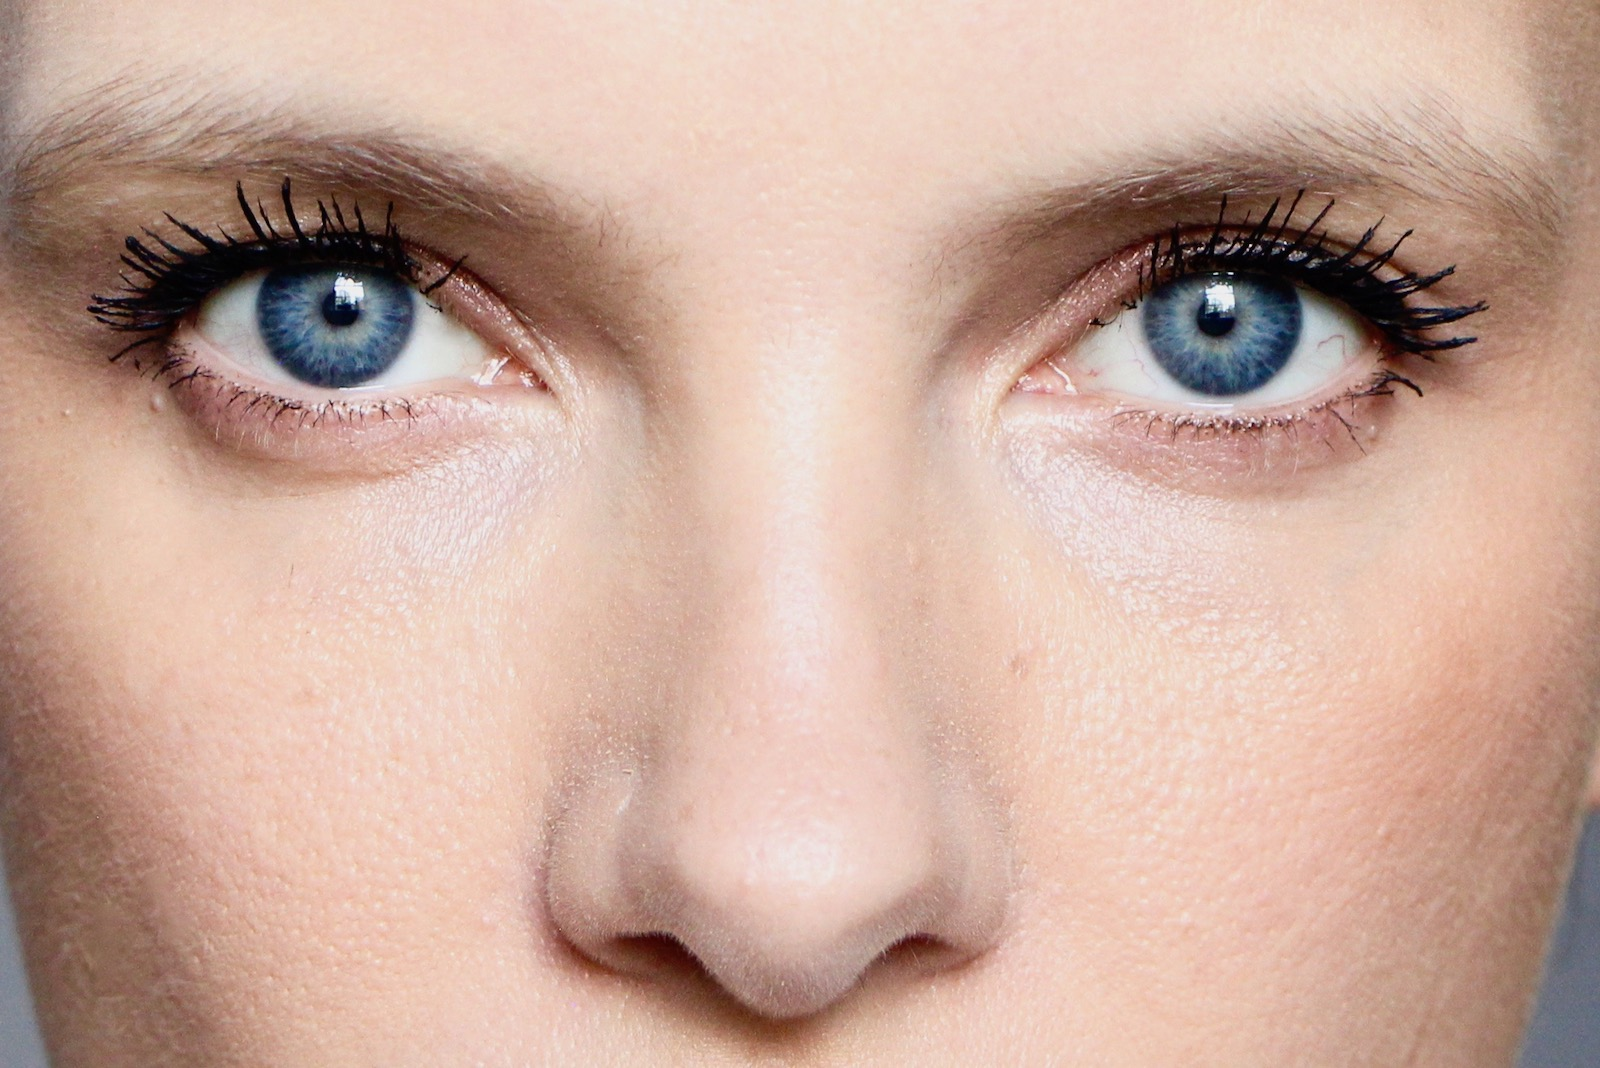 Non-surgical Eyelift Options That Are Easily Available In The Modern World